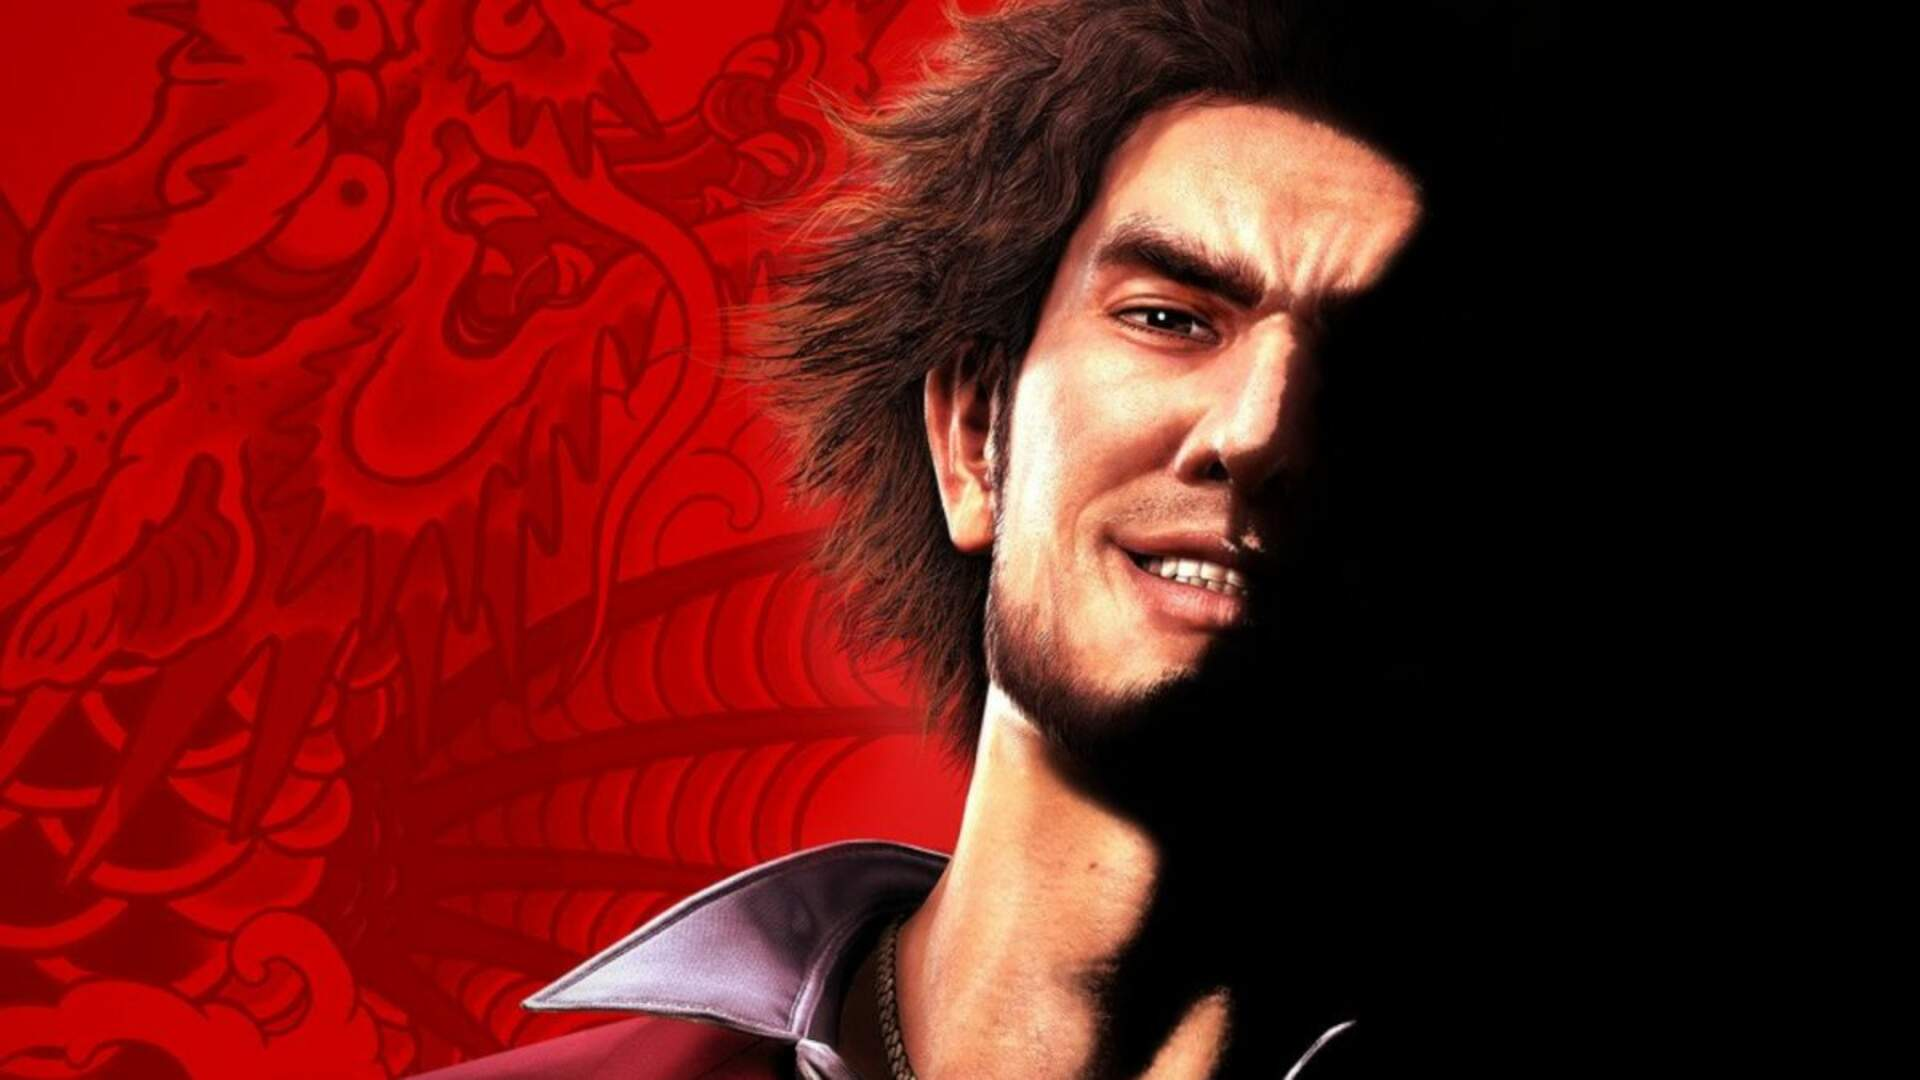 Yakuza Localization Head Says Next Step For Franchise Is Simultaneous Global Release